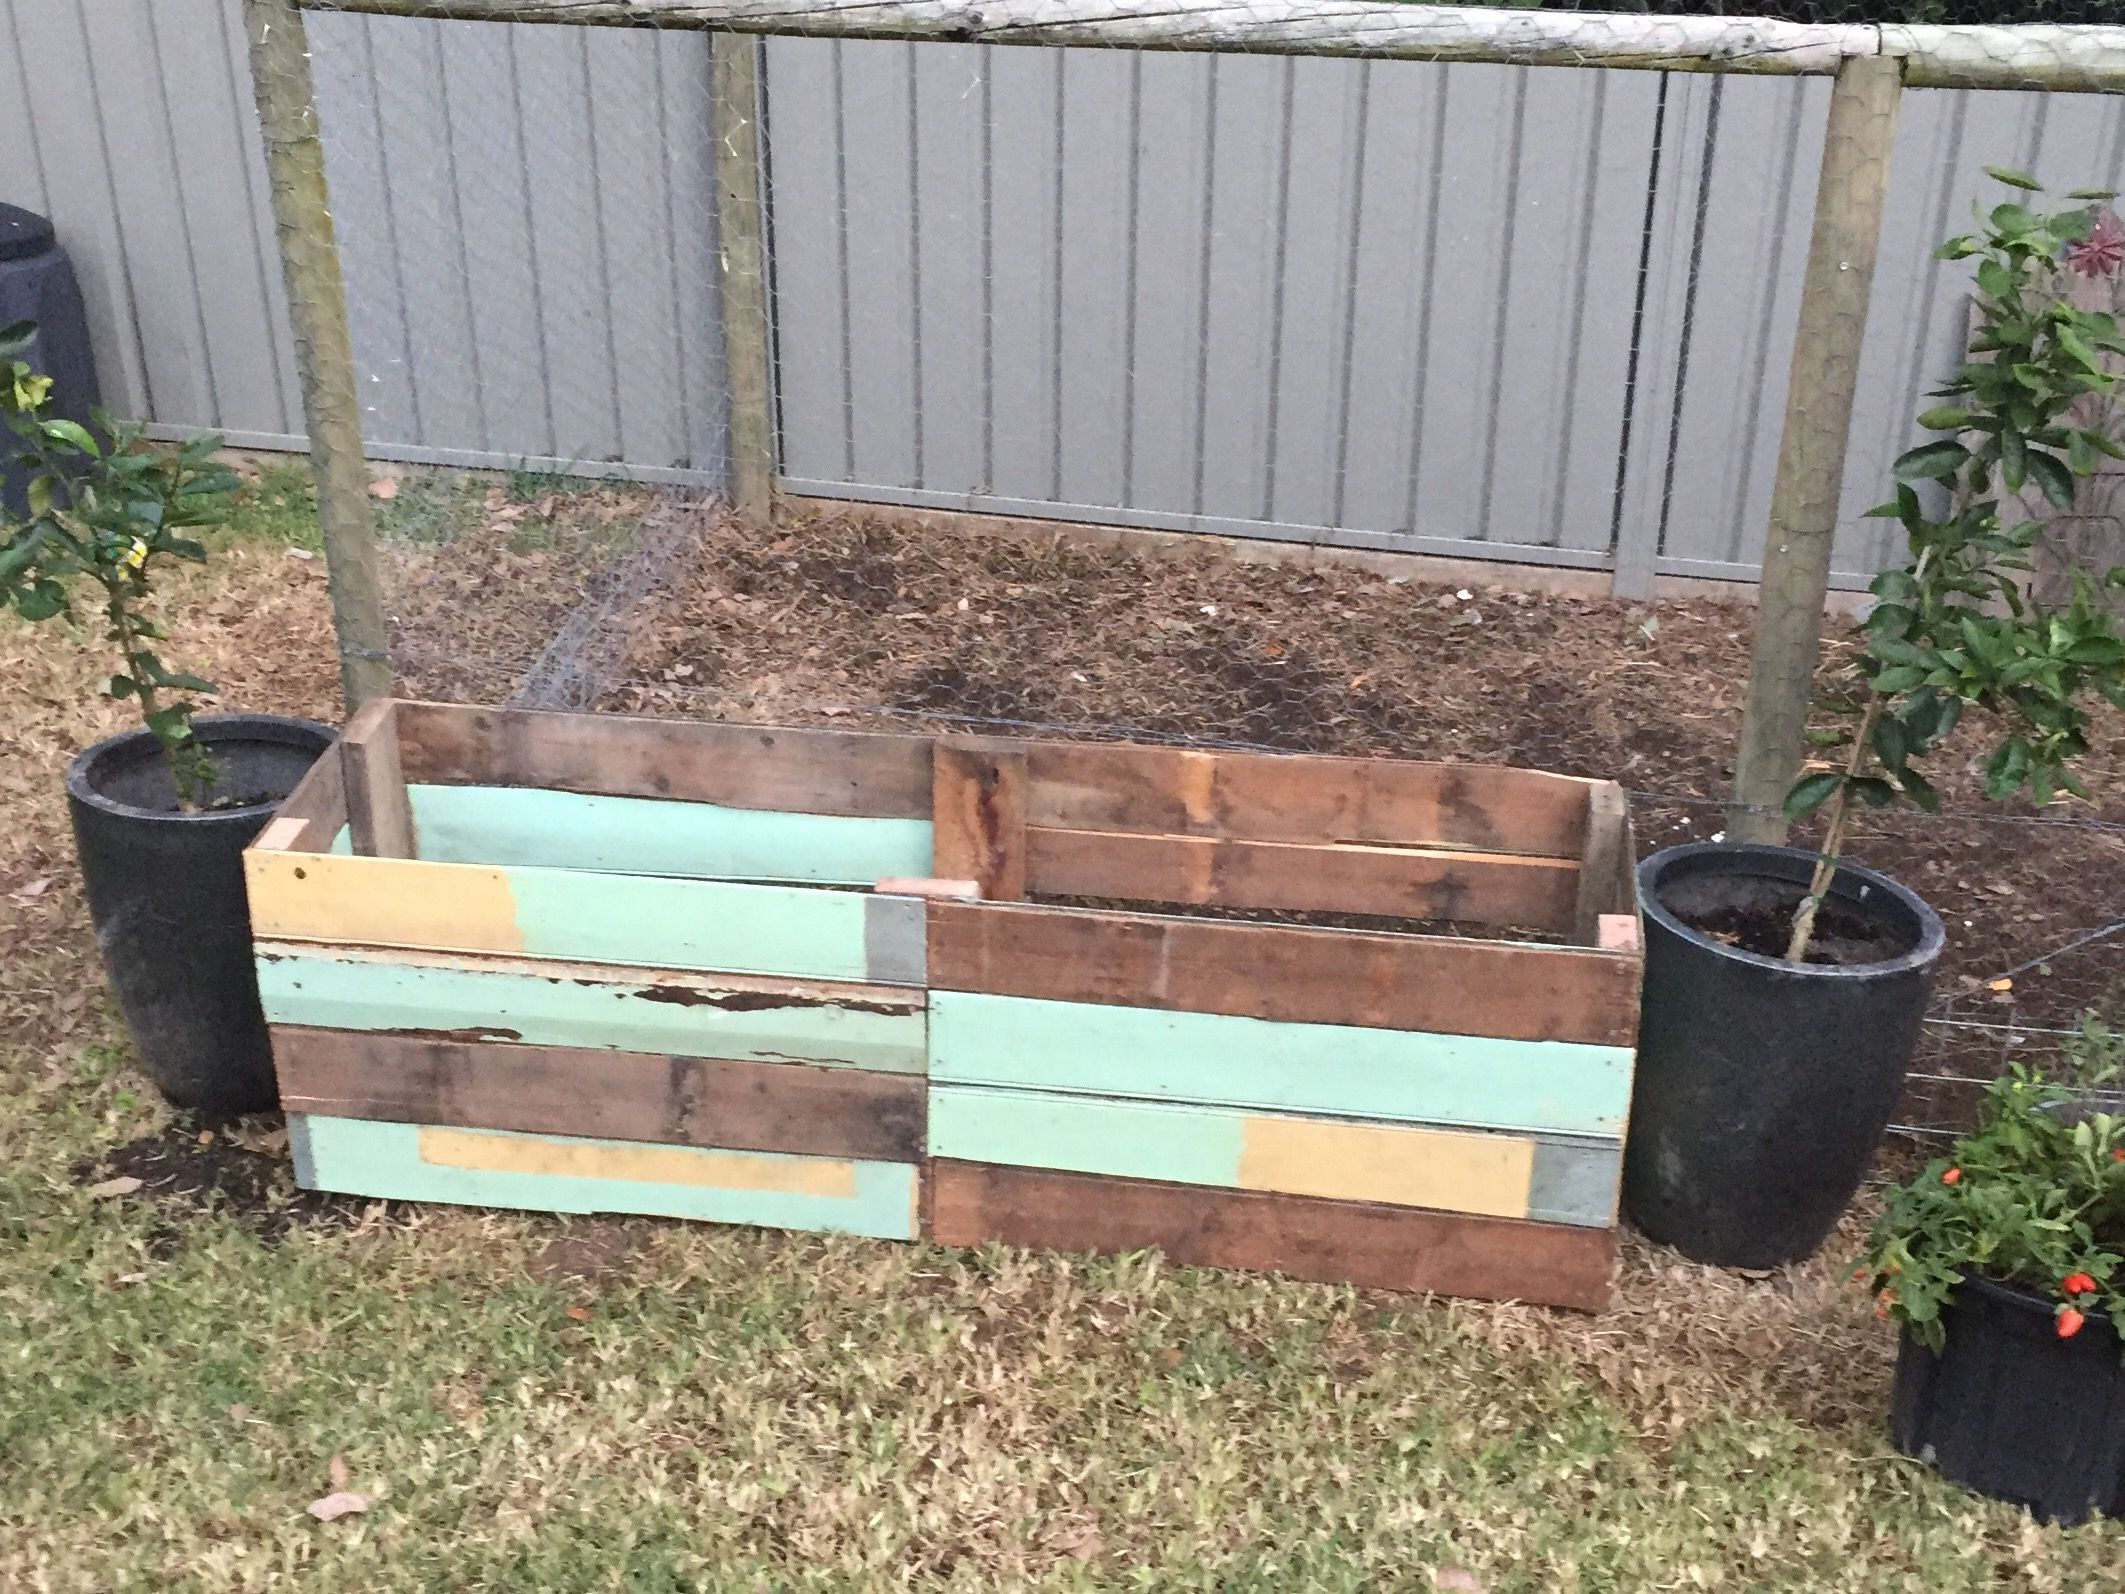 DIY Vegetable planter box made from recycled wood